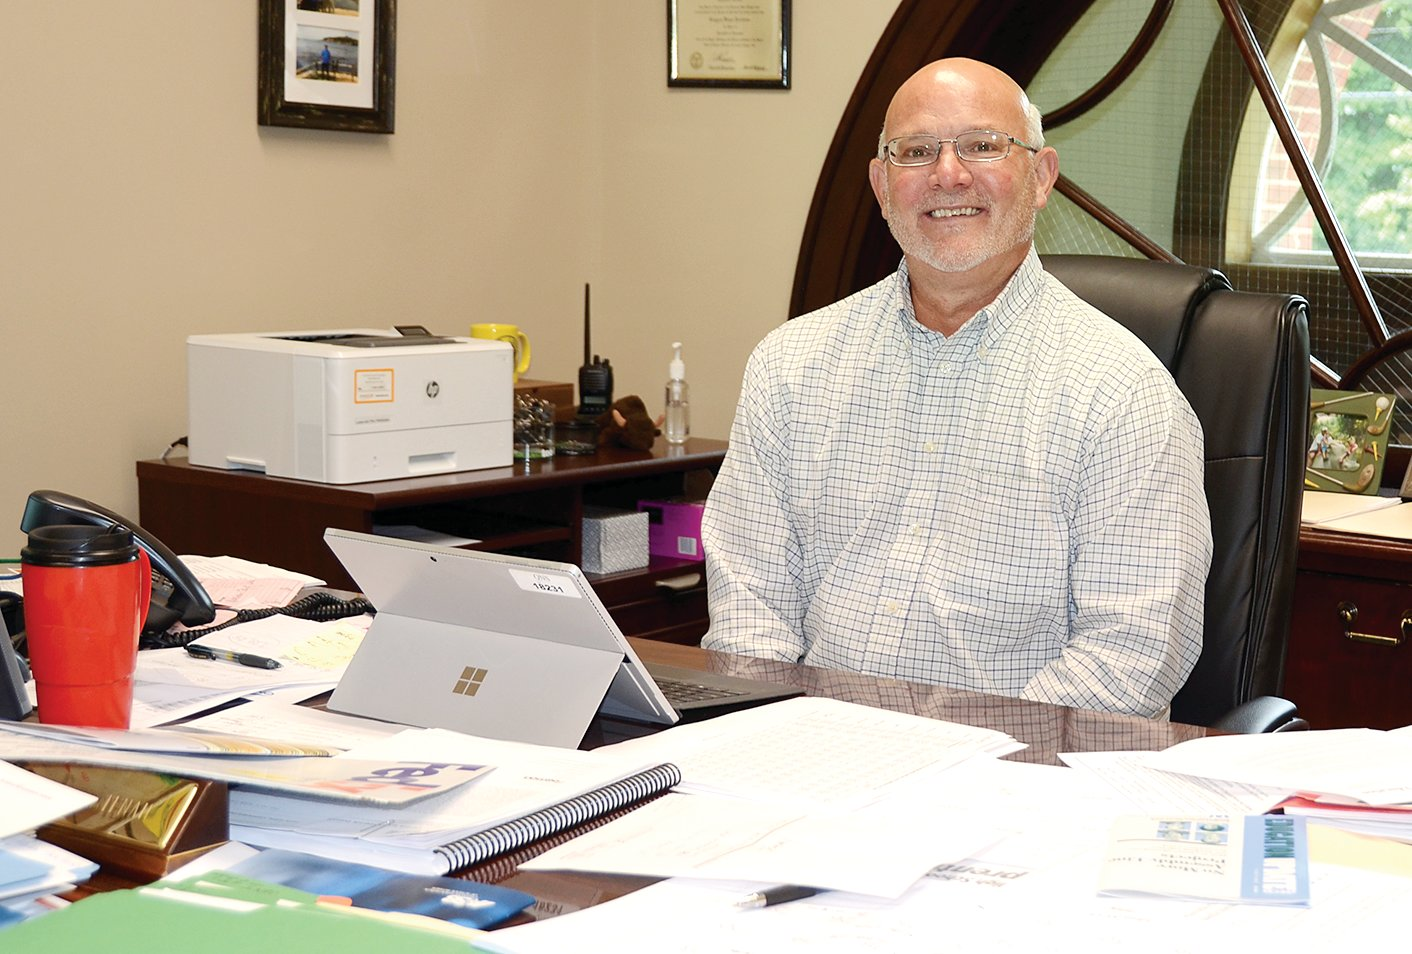 Dr. Greggory Fuerstenau of Taylorville started as the new superintendent of the Litchfield School District on Monday, July 1, as part of a three-year contract.